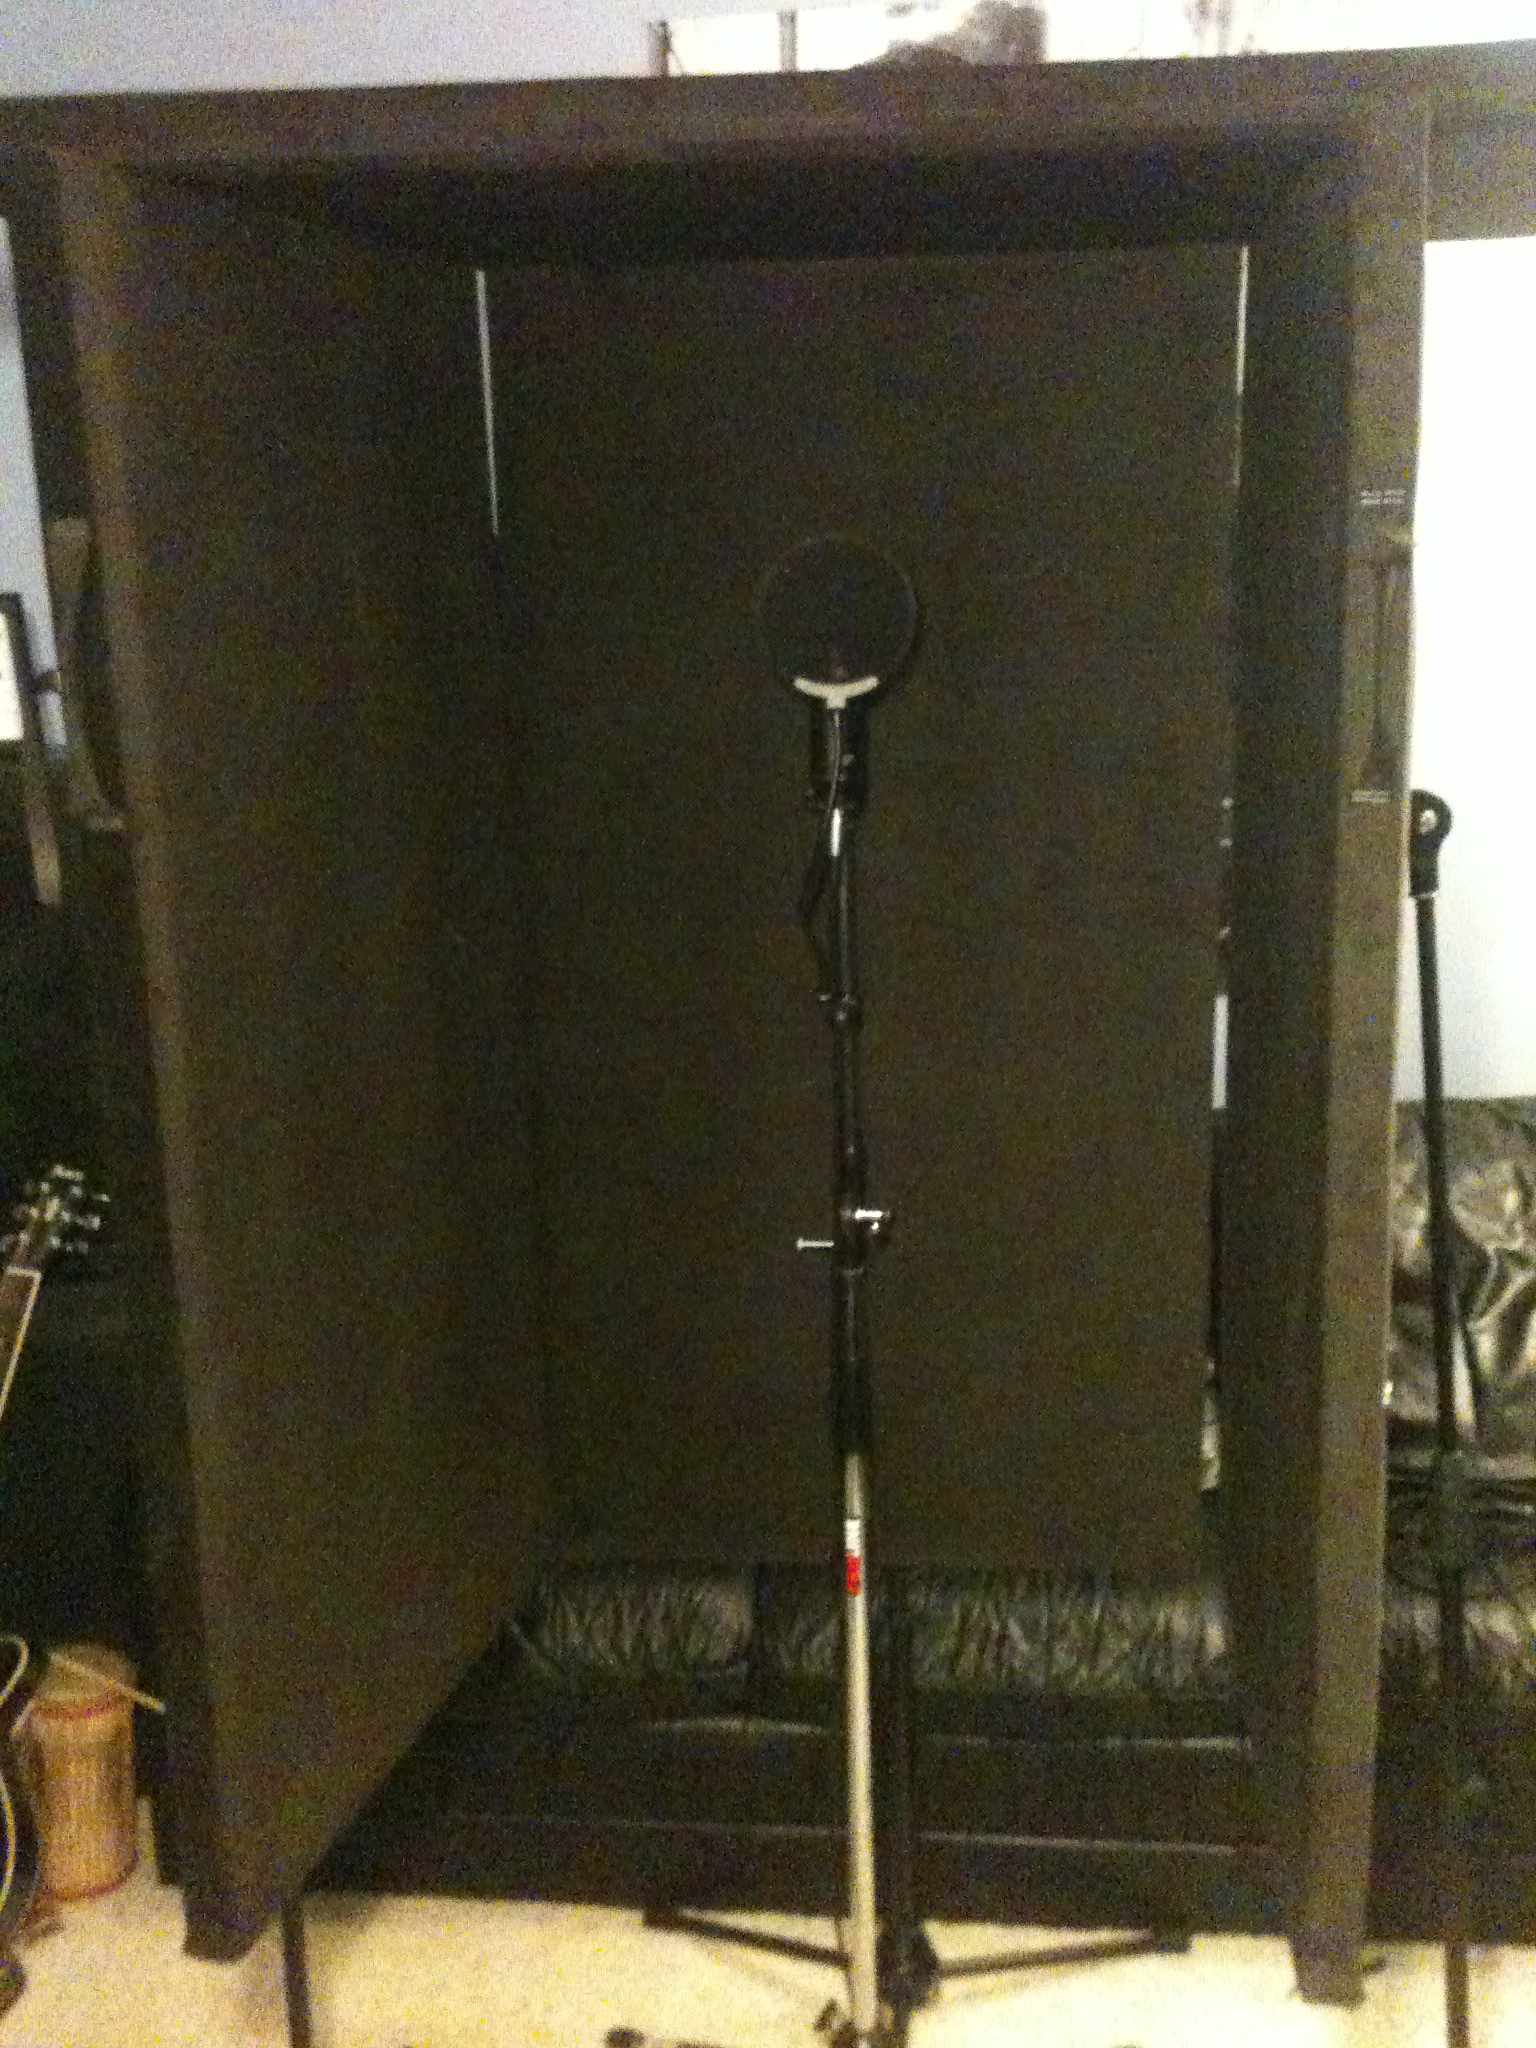 My DIY Portable Vocal Booth is Complete! - Gearslutz.